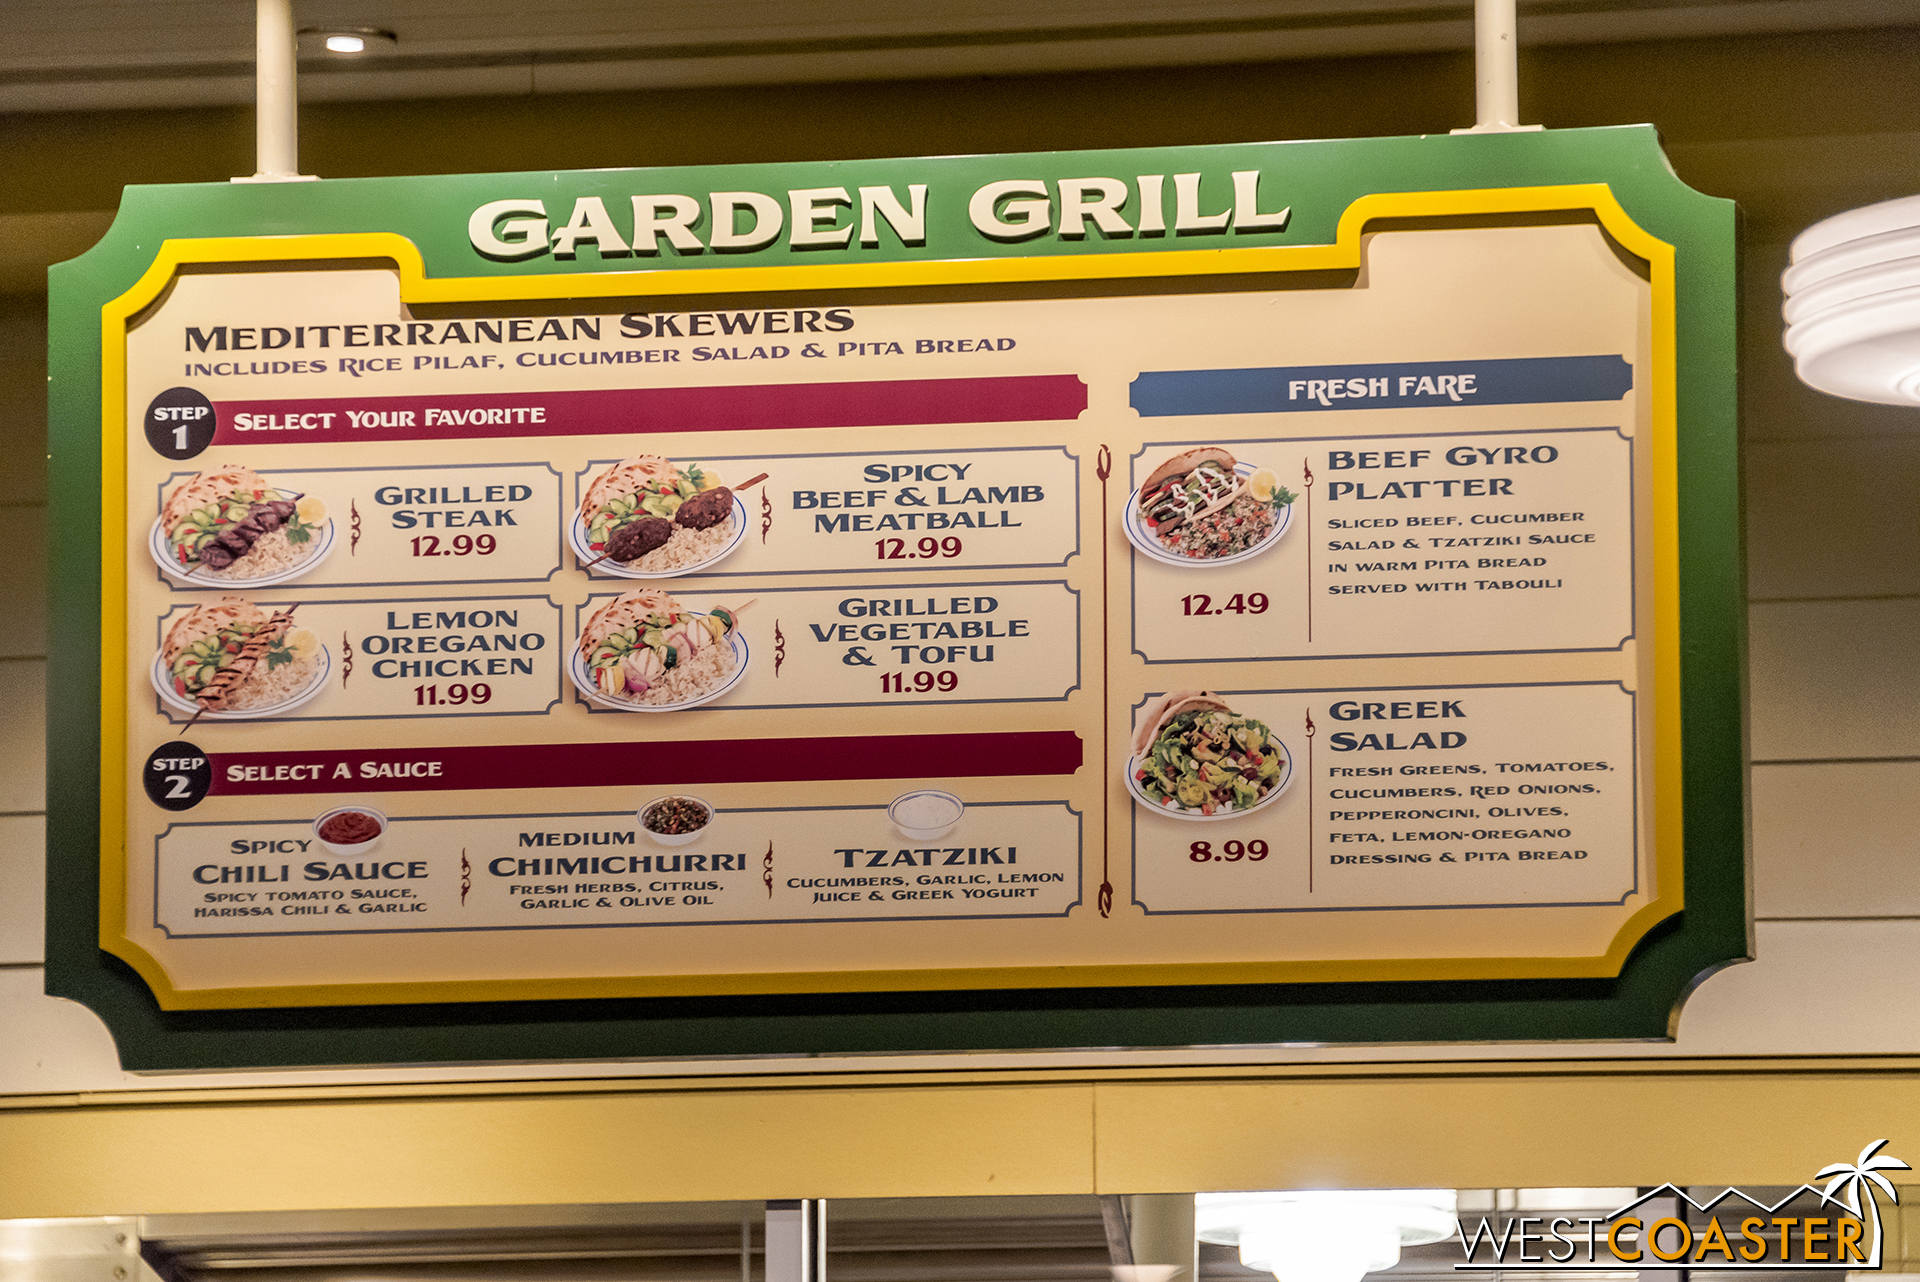 It seems like the Garden Grill has its regular menu less often than a seasonal menu these days. Grab some skewers before they go away again.